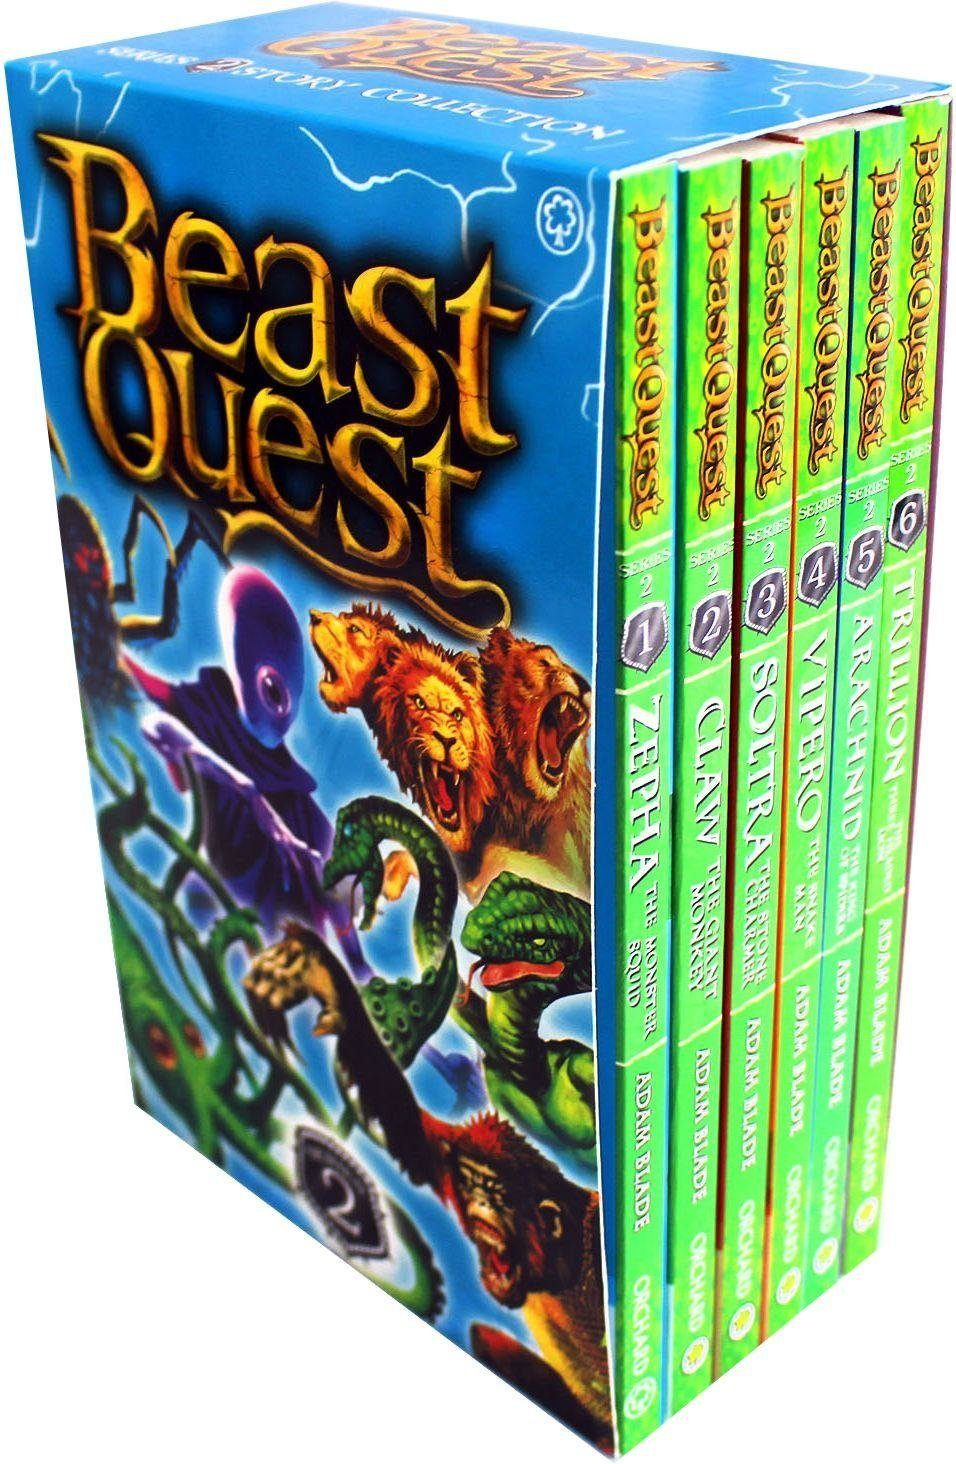 beast quest series 2  6 books  ages 79  paperback